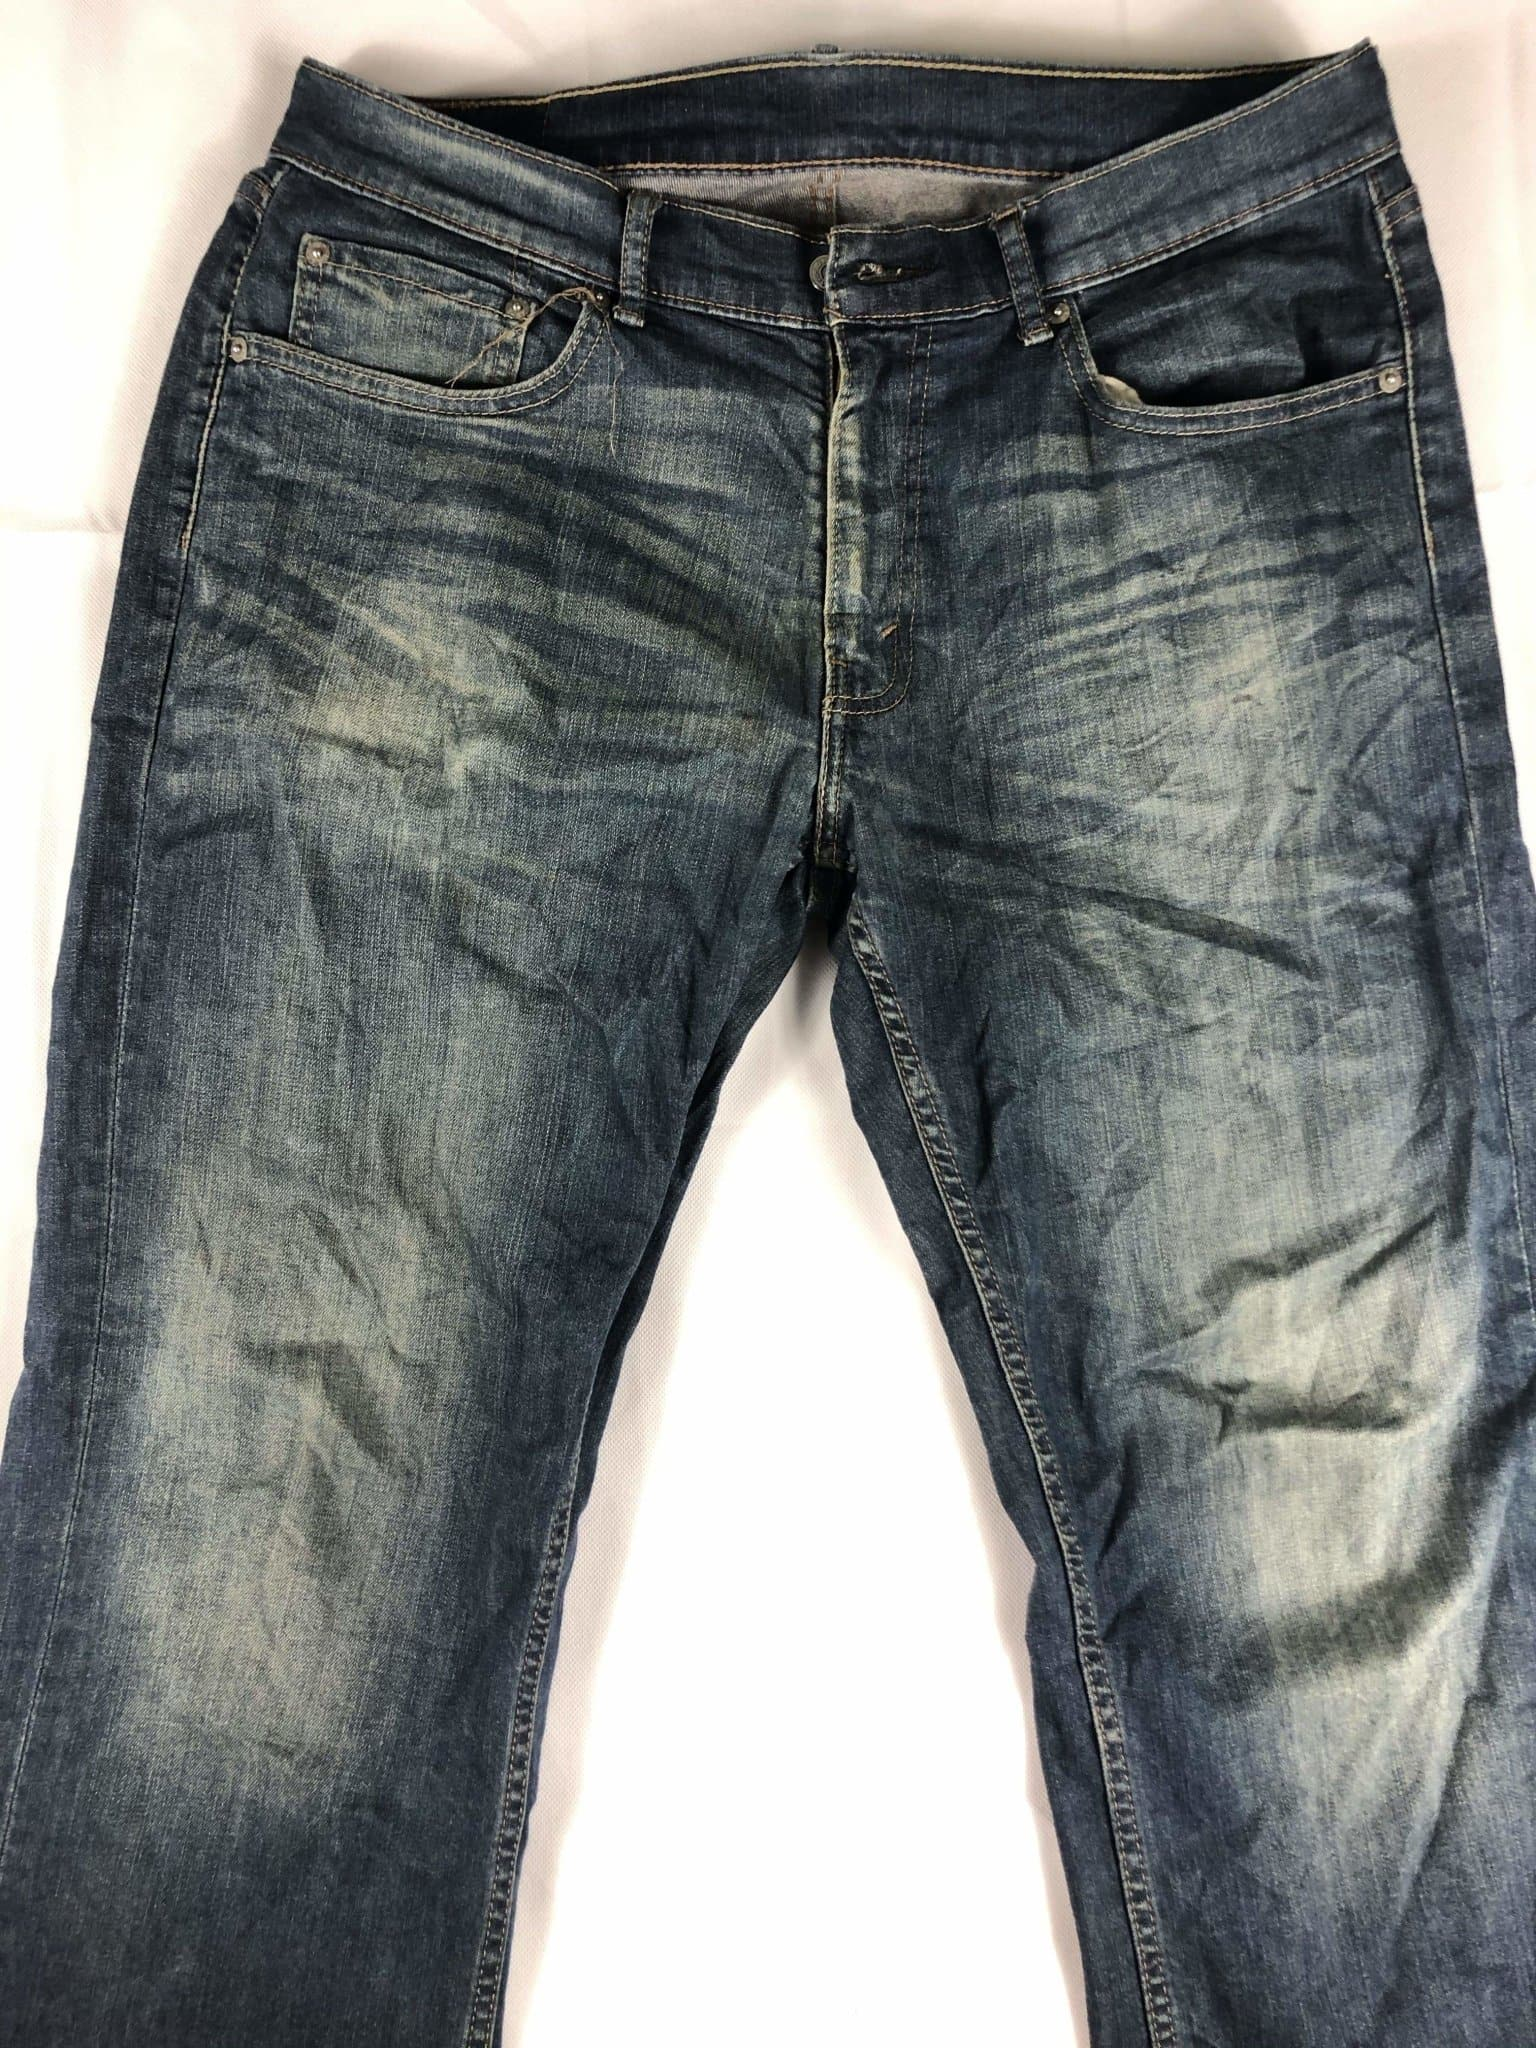 Vintage Levi's 559 Jeans W33 L30 (M15) - Discounted Deals UK